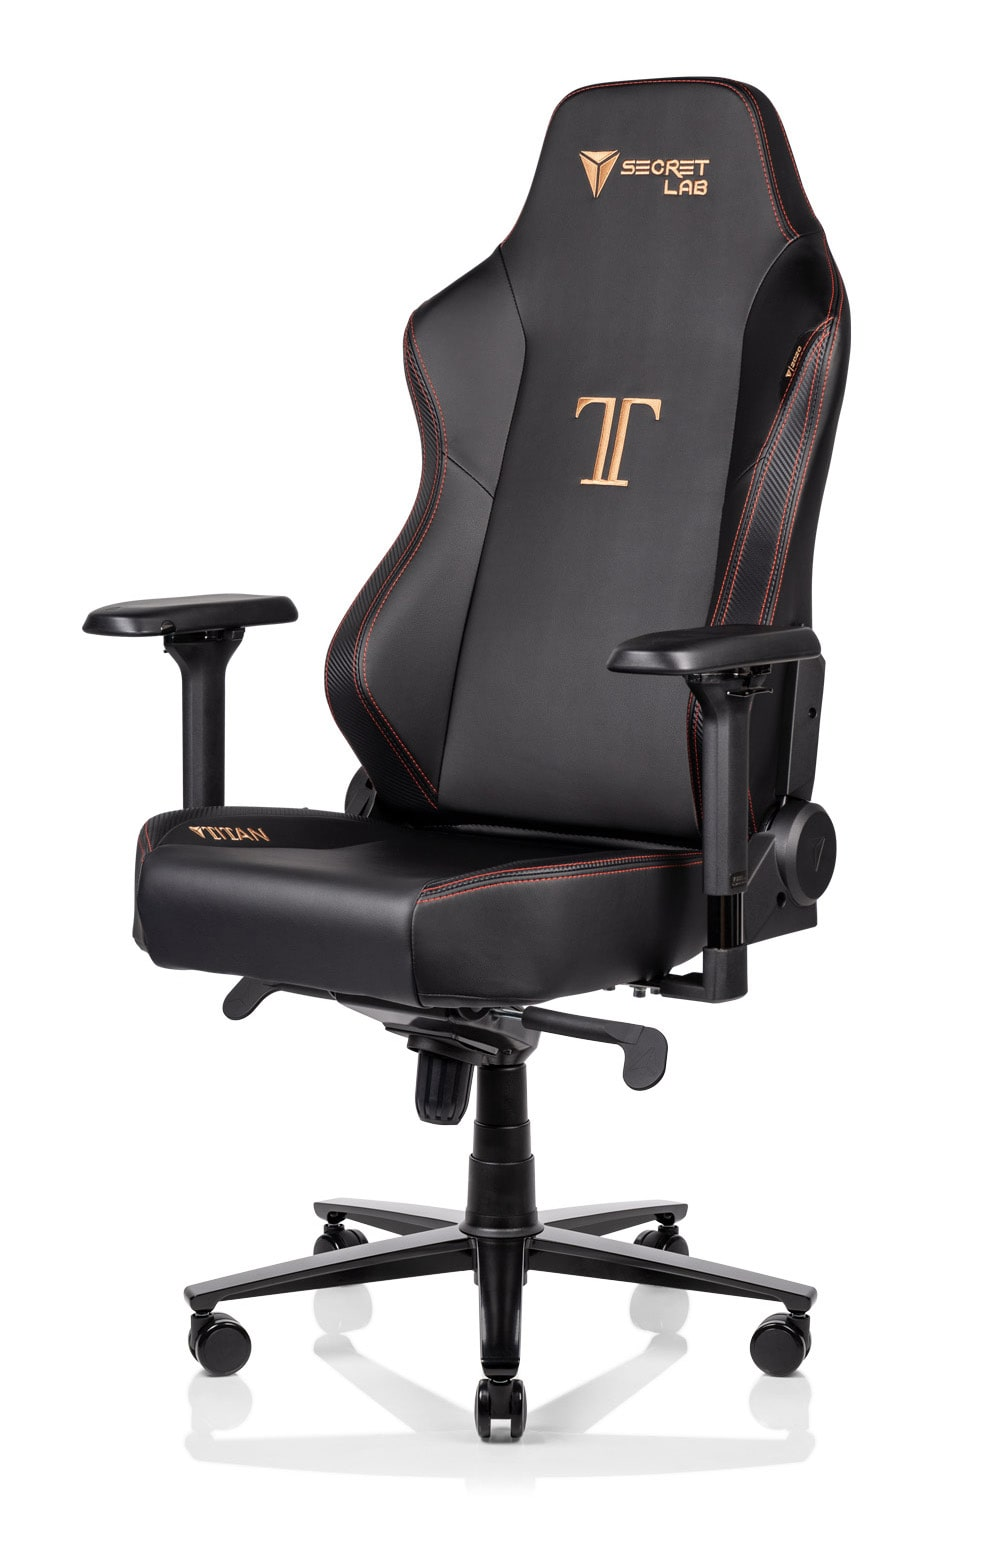 SecretLab Titan 2020 Series